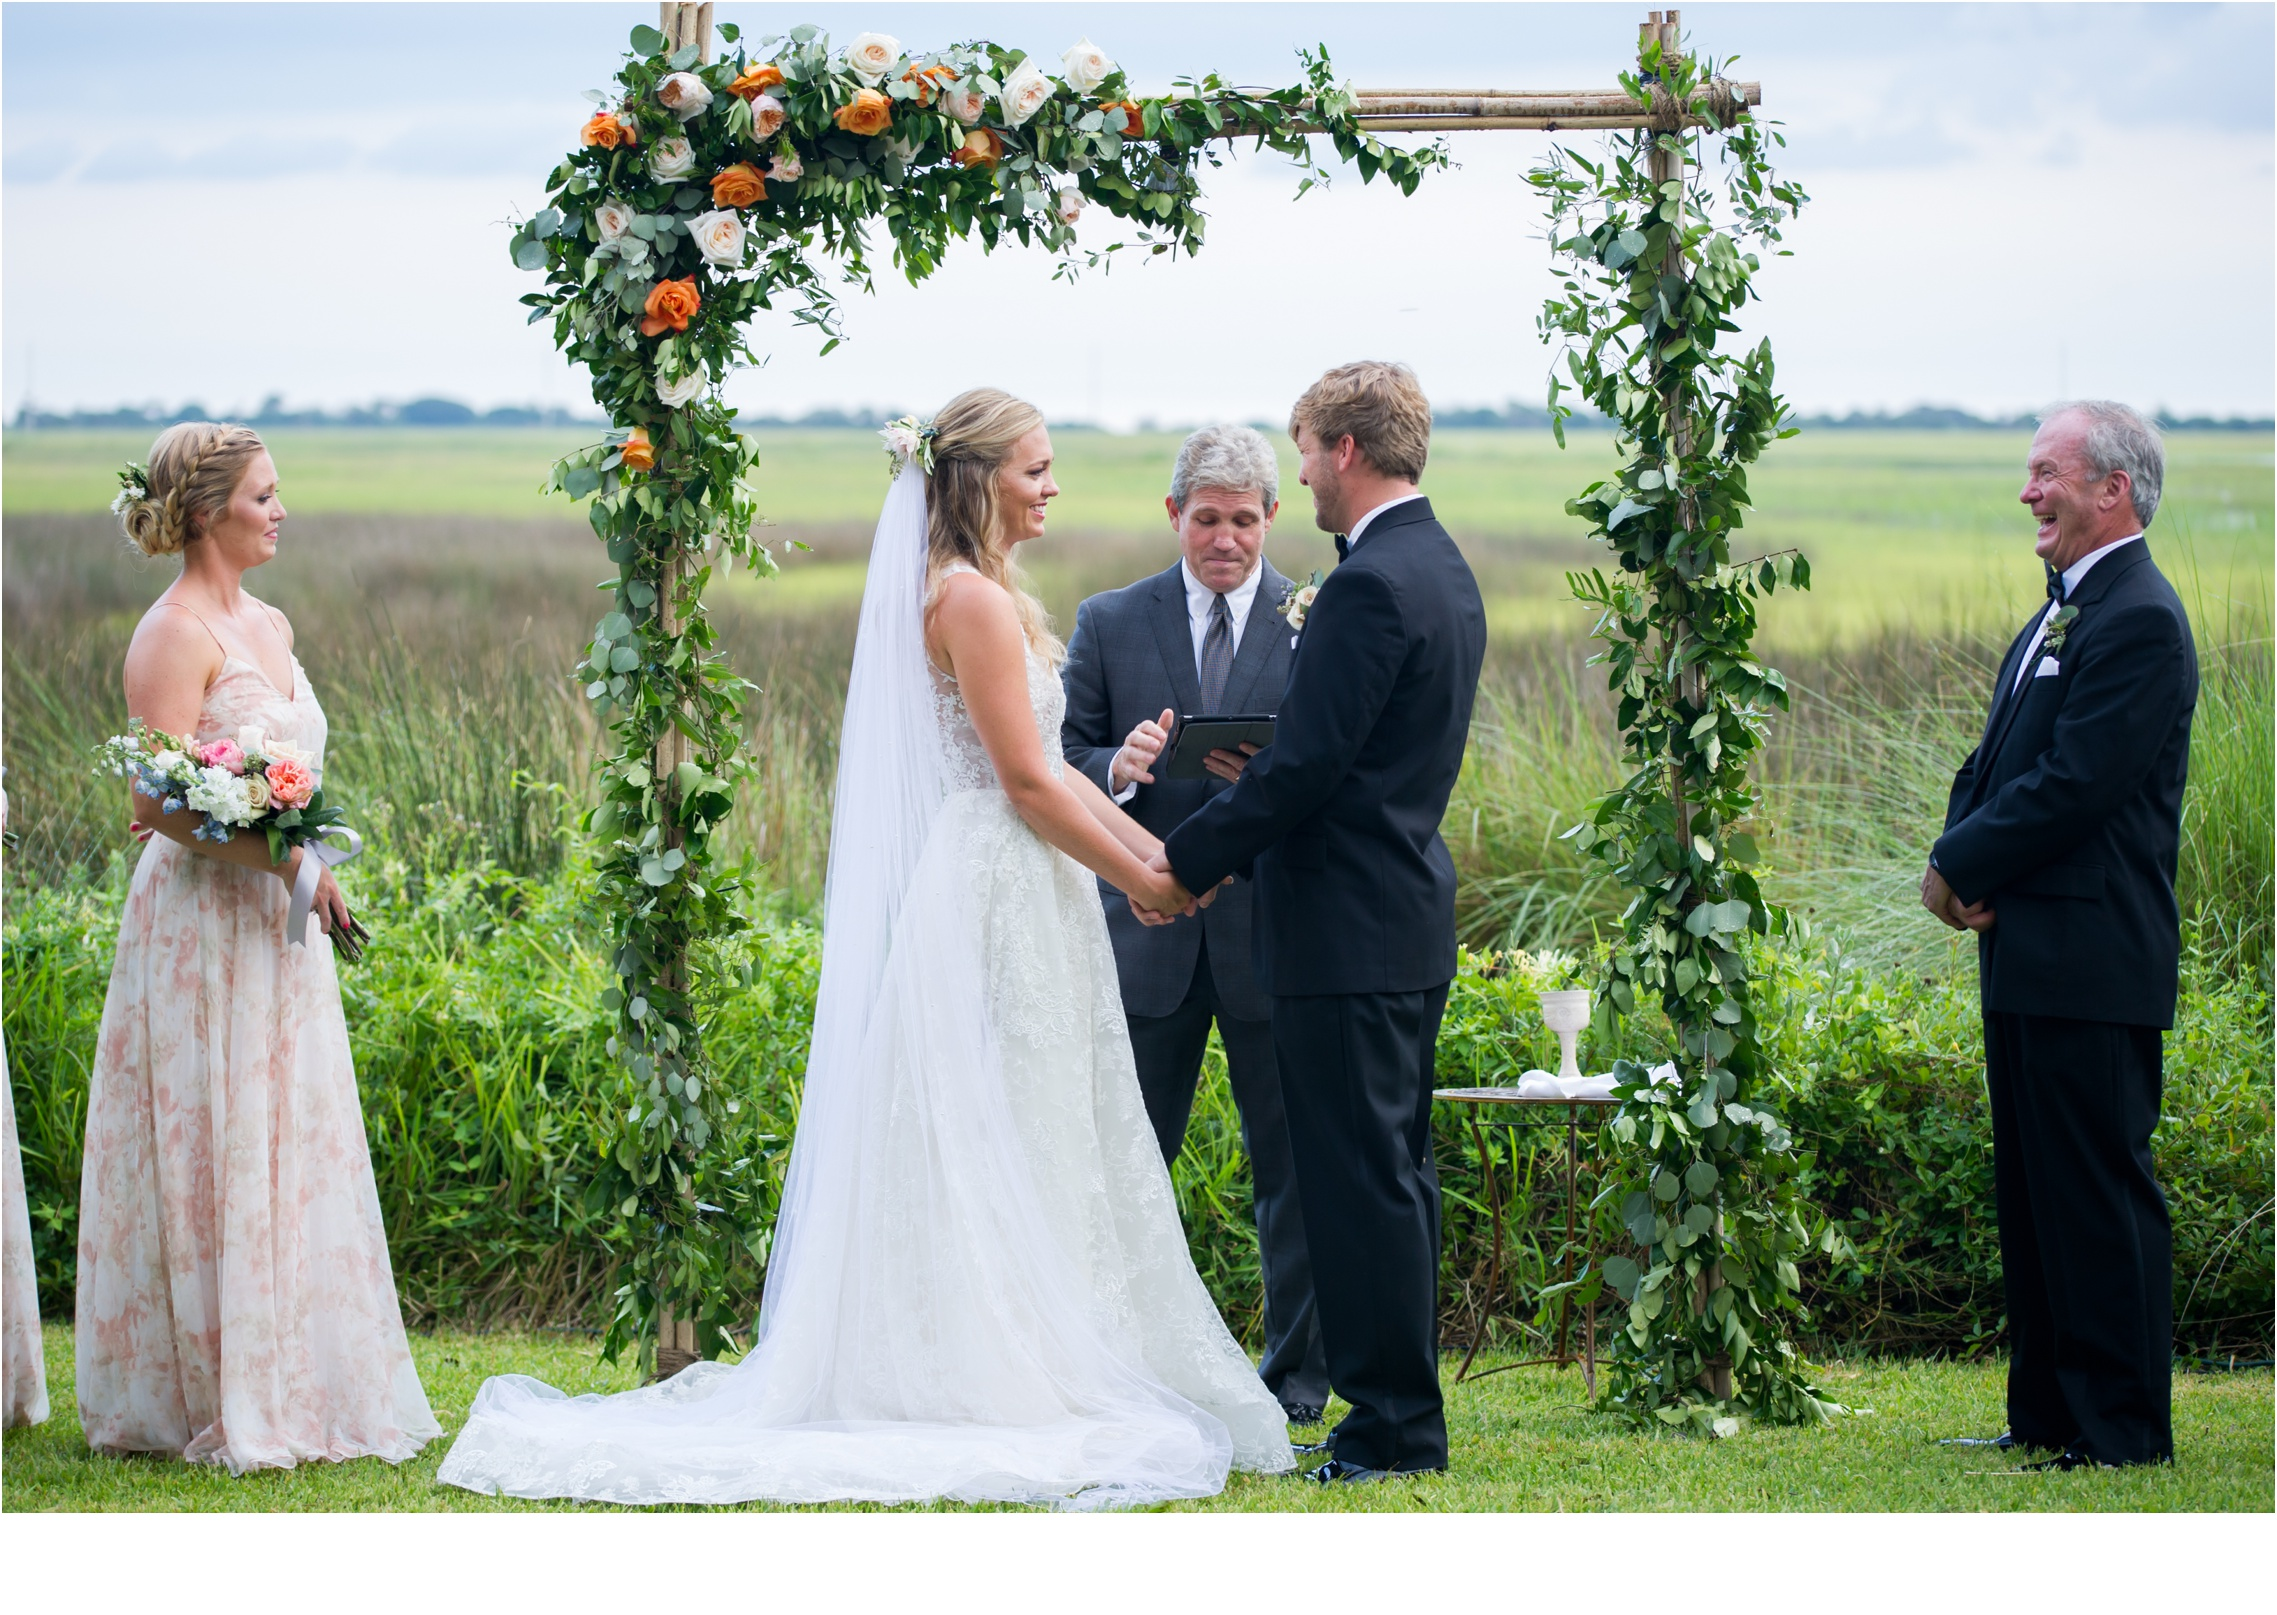 Rainey_Gregg_Photography_St._Simons_Island_Georgia_California_Wedding_Portrait_Photography_0073.jpg